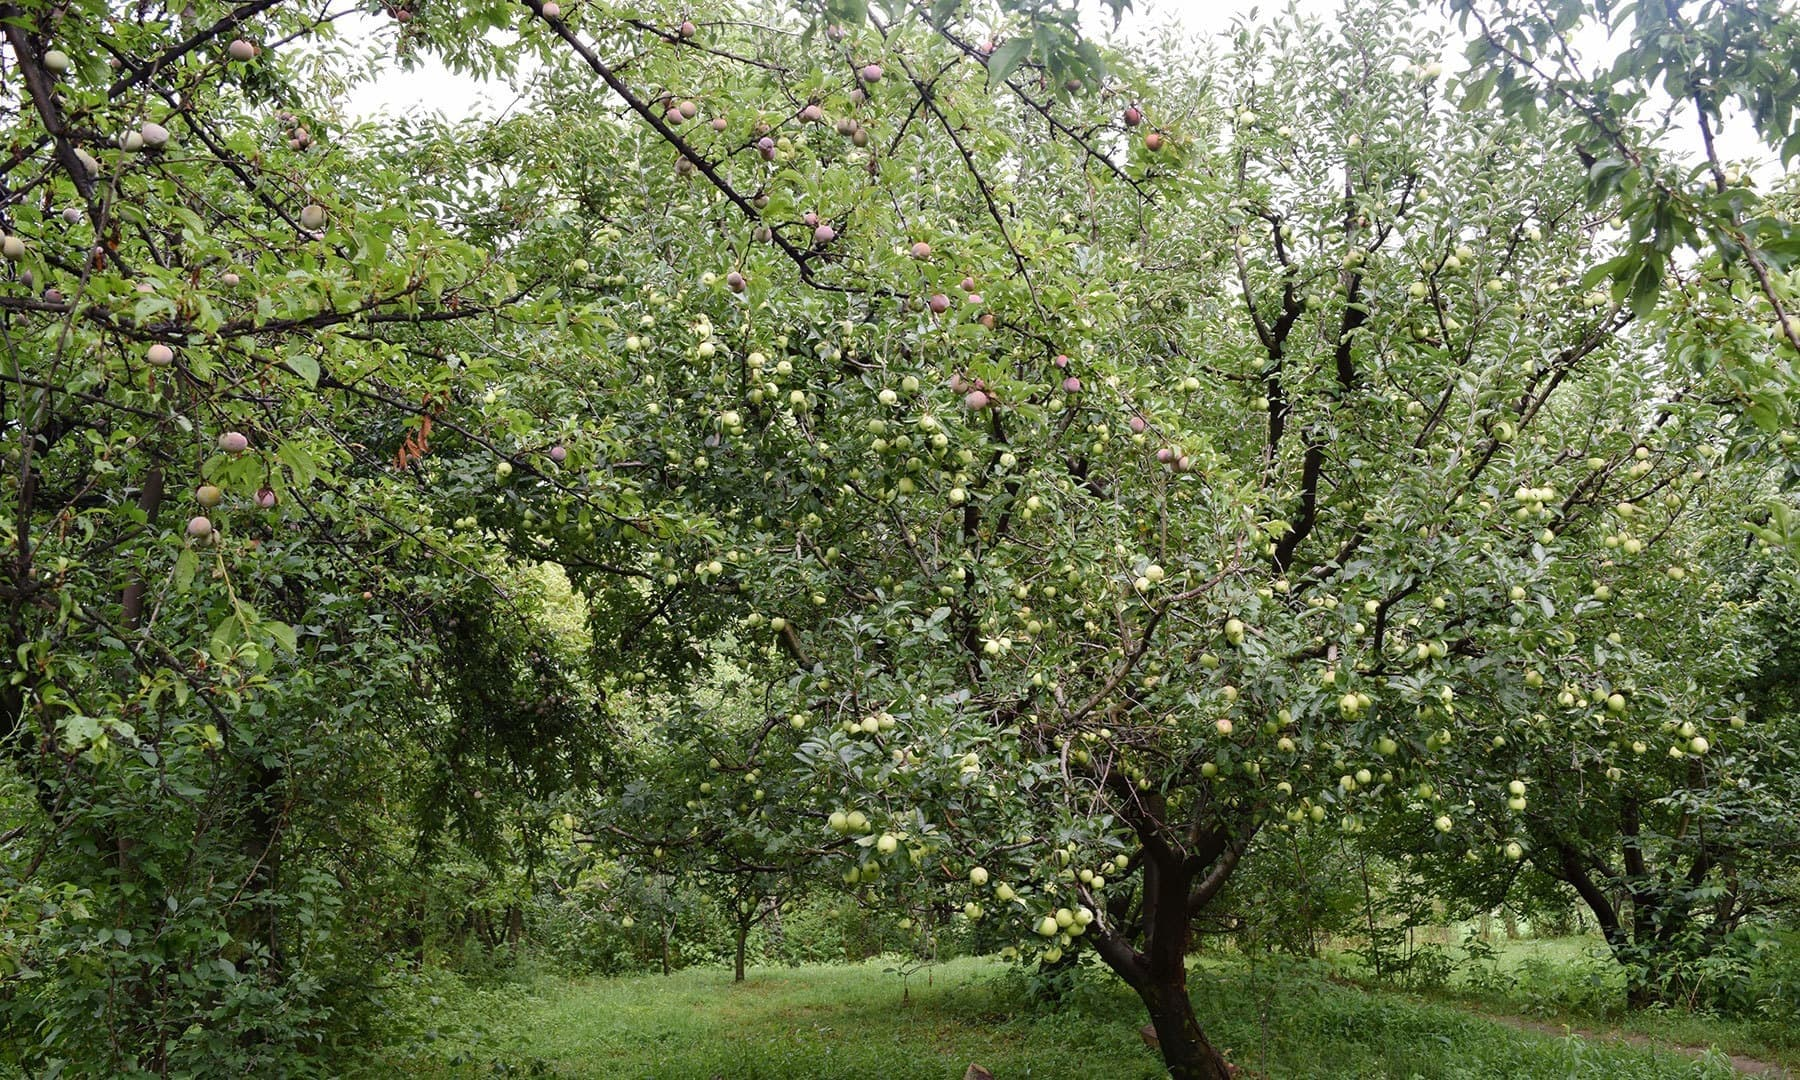 Trees of Fransisi apples and local plums are face to face.